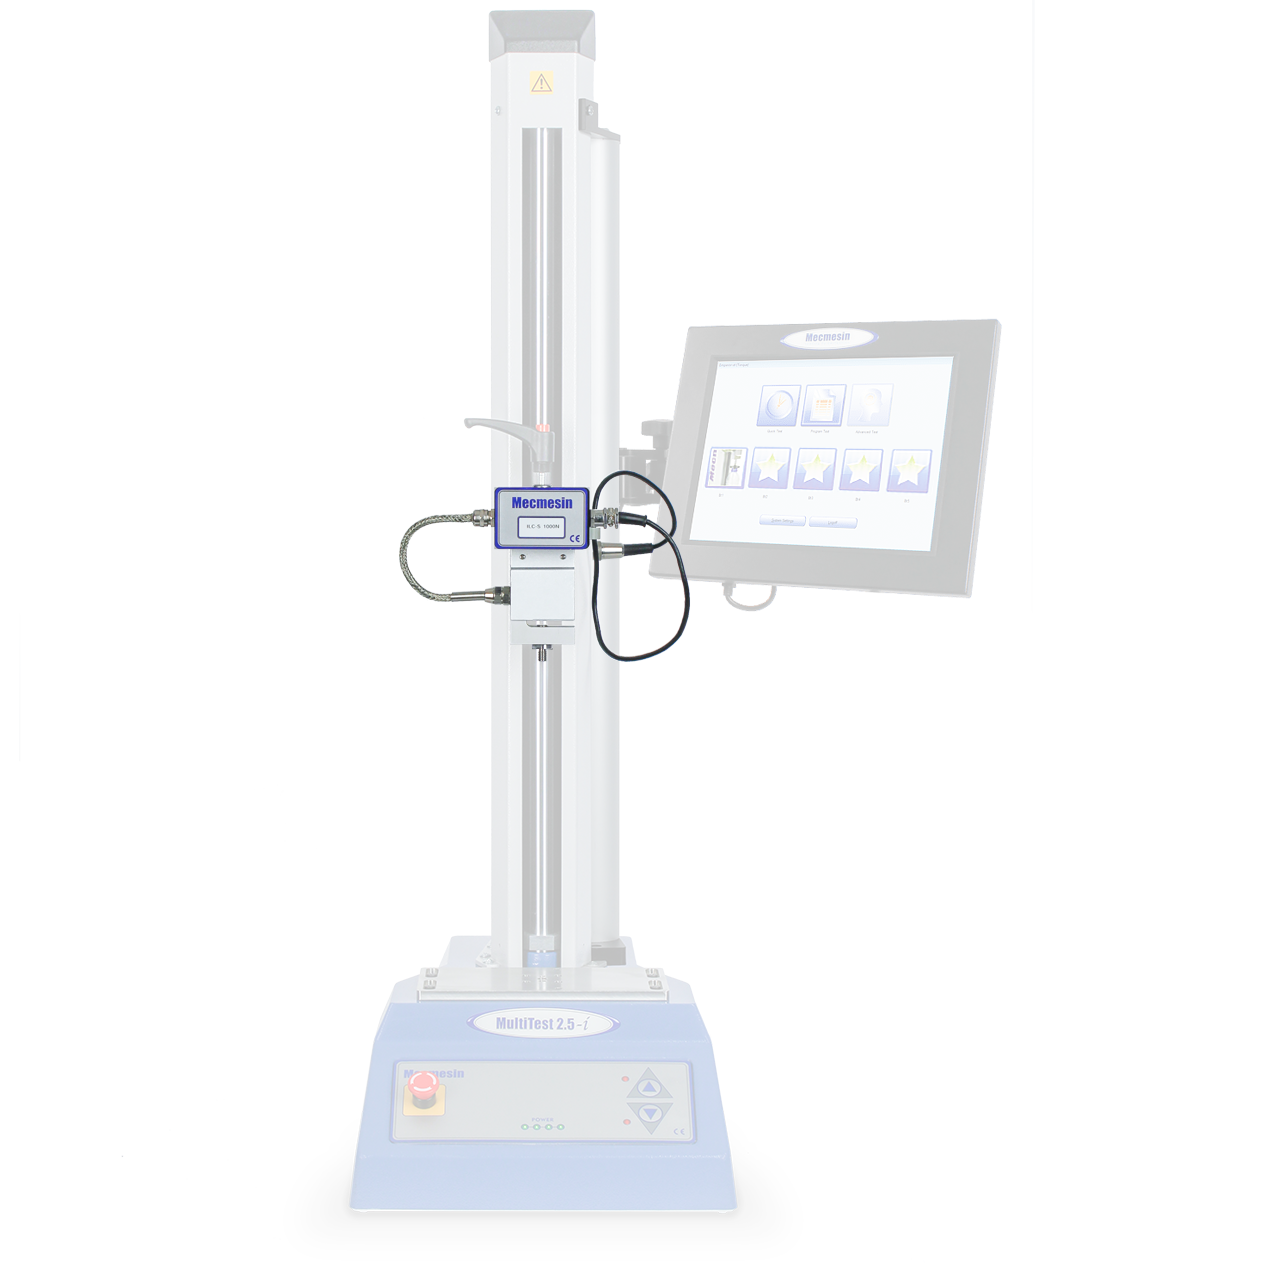 MultiTest-i 2.5 kN automated force testing system, sensor/loadcell emphasised